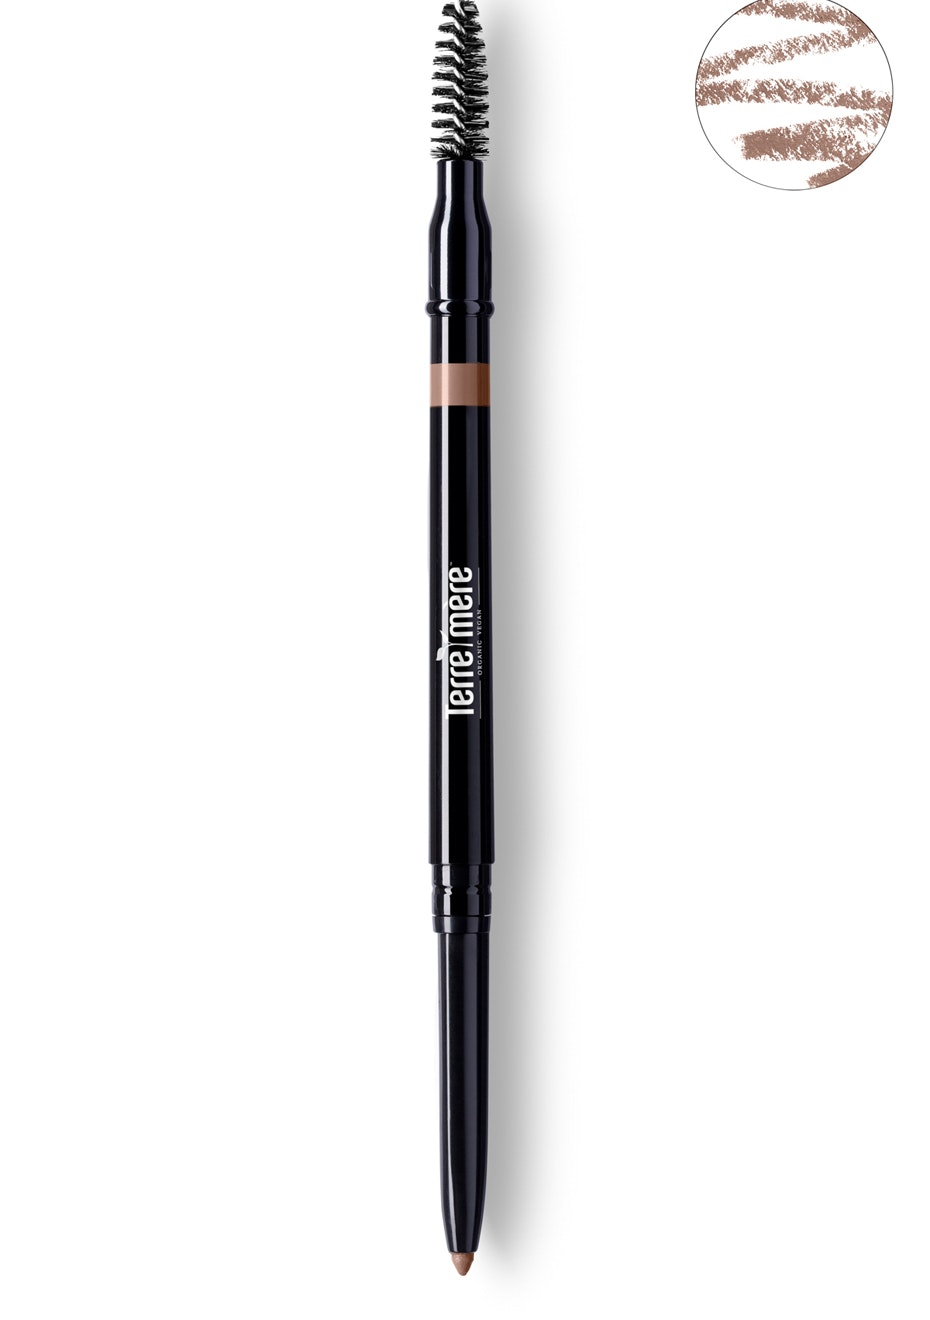 Terre Mere - Indelible Brow Pencil - Natural Taupe